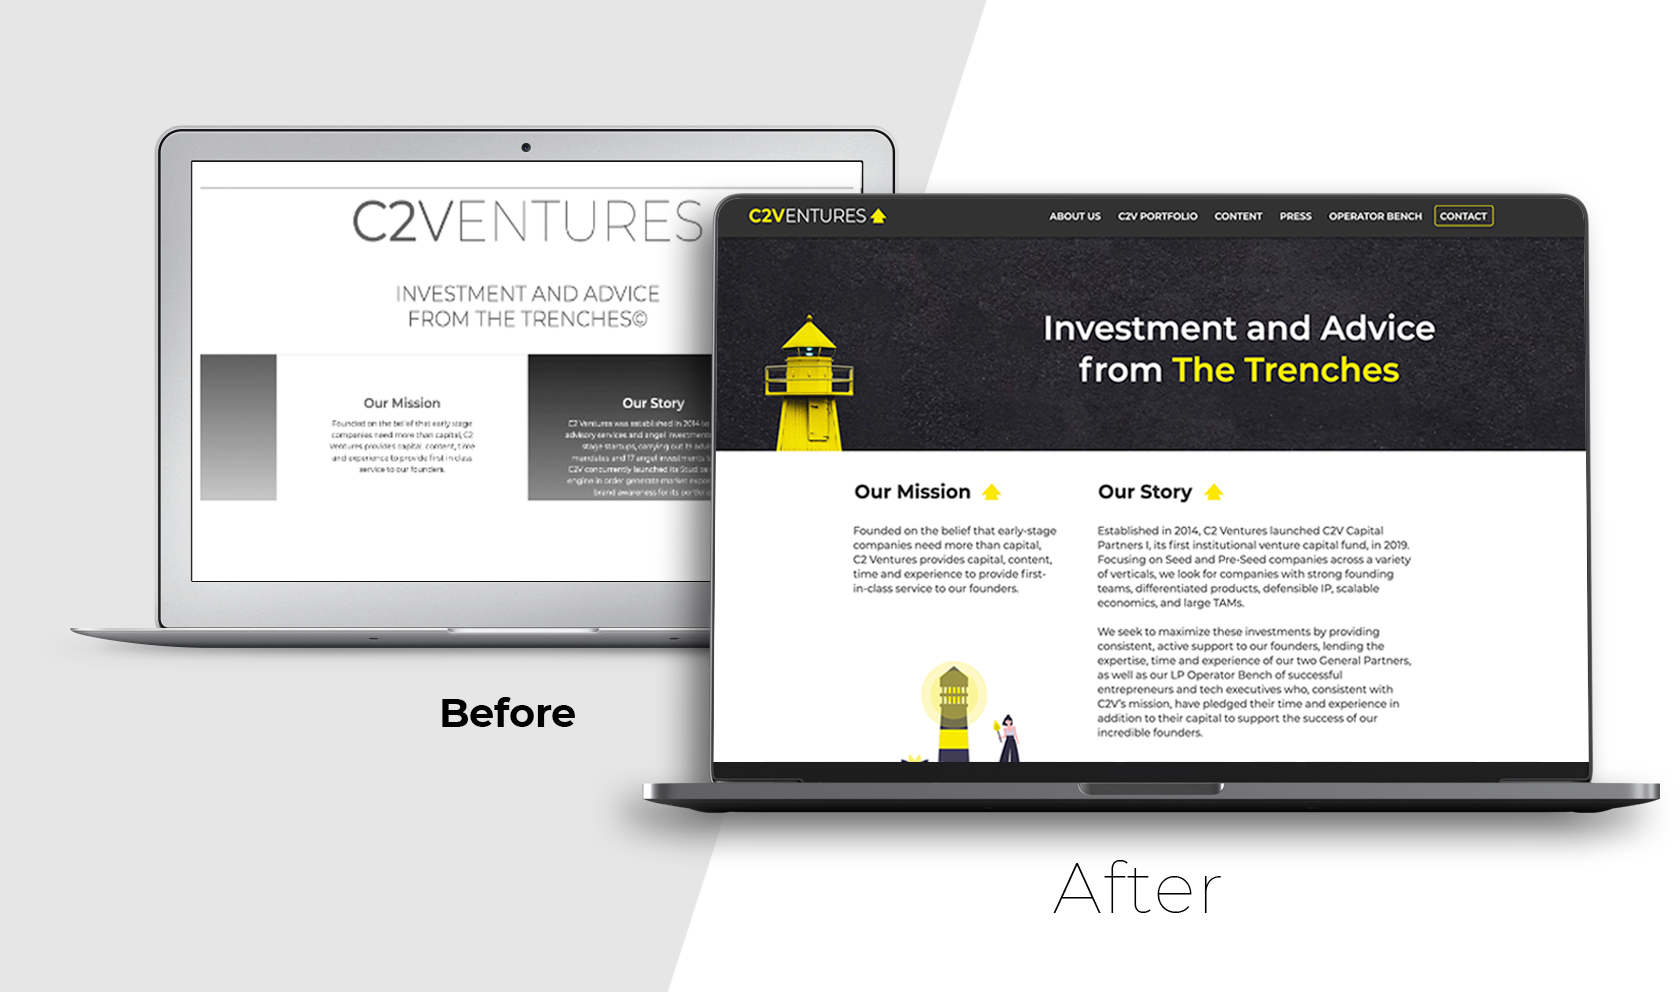 C2 Ventures web design before and after